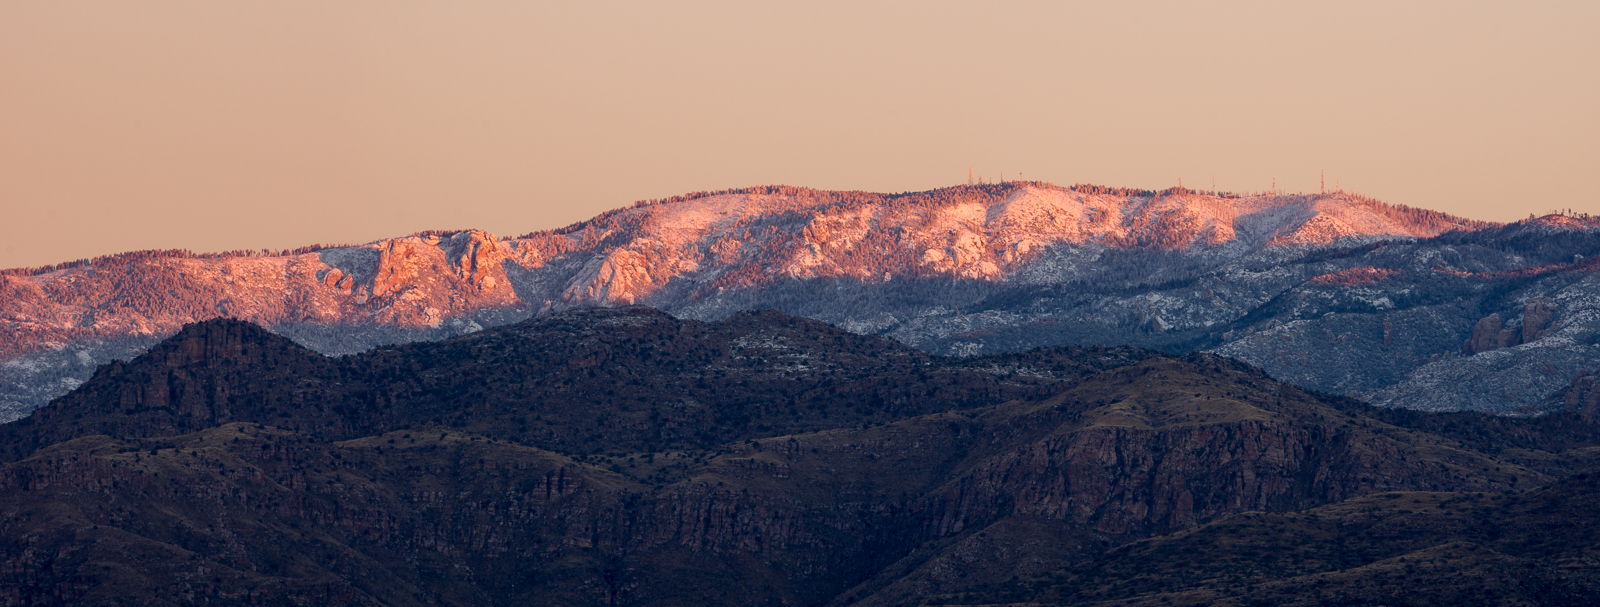 Subtle sunrise color on the Mount Lemmon Snow. December 2015.